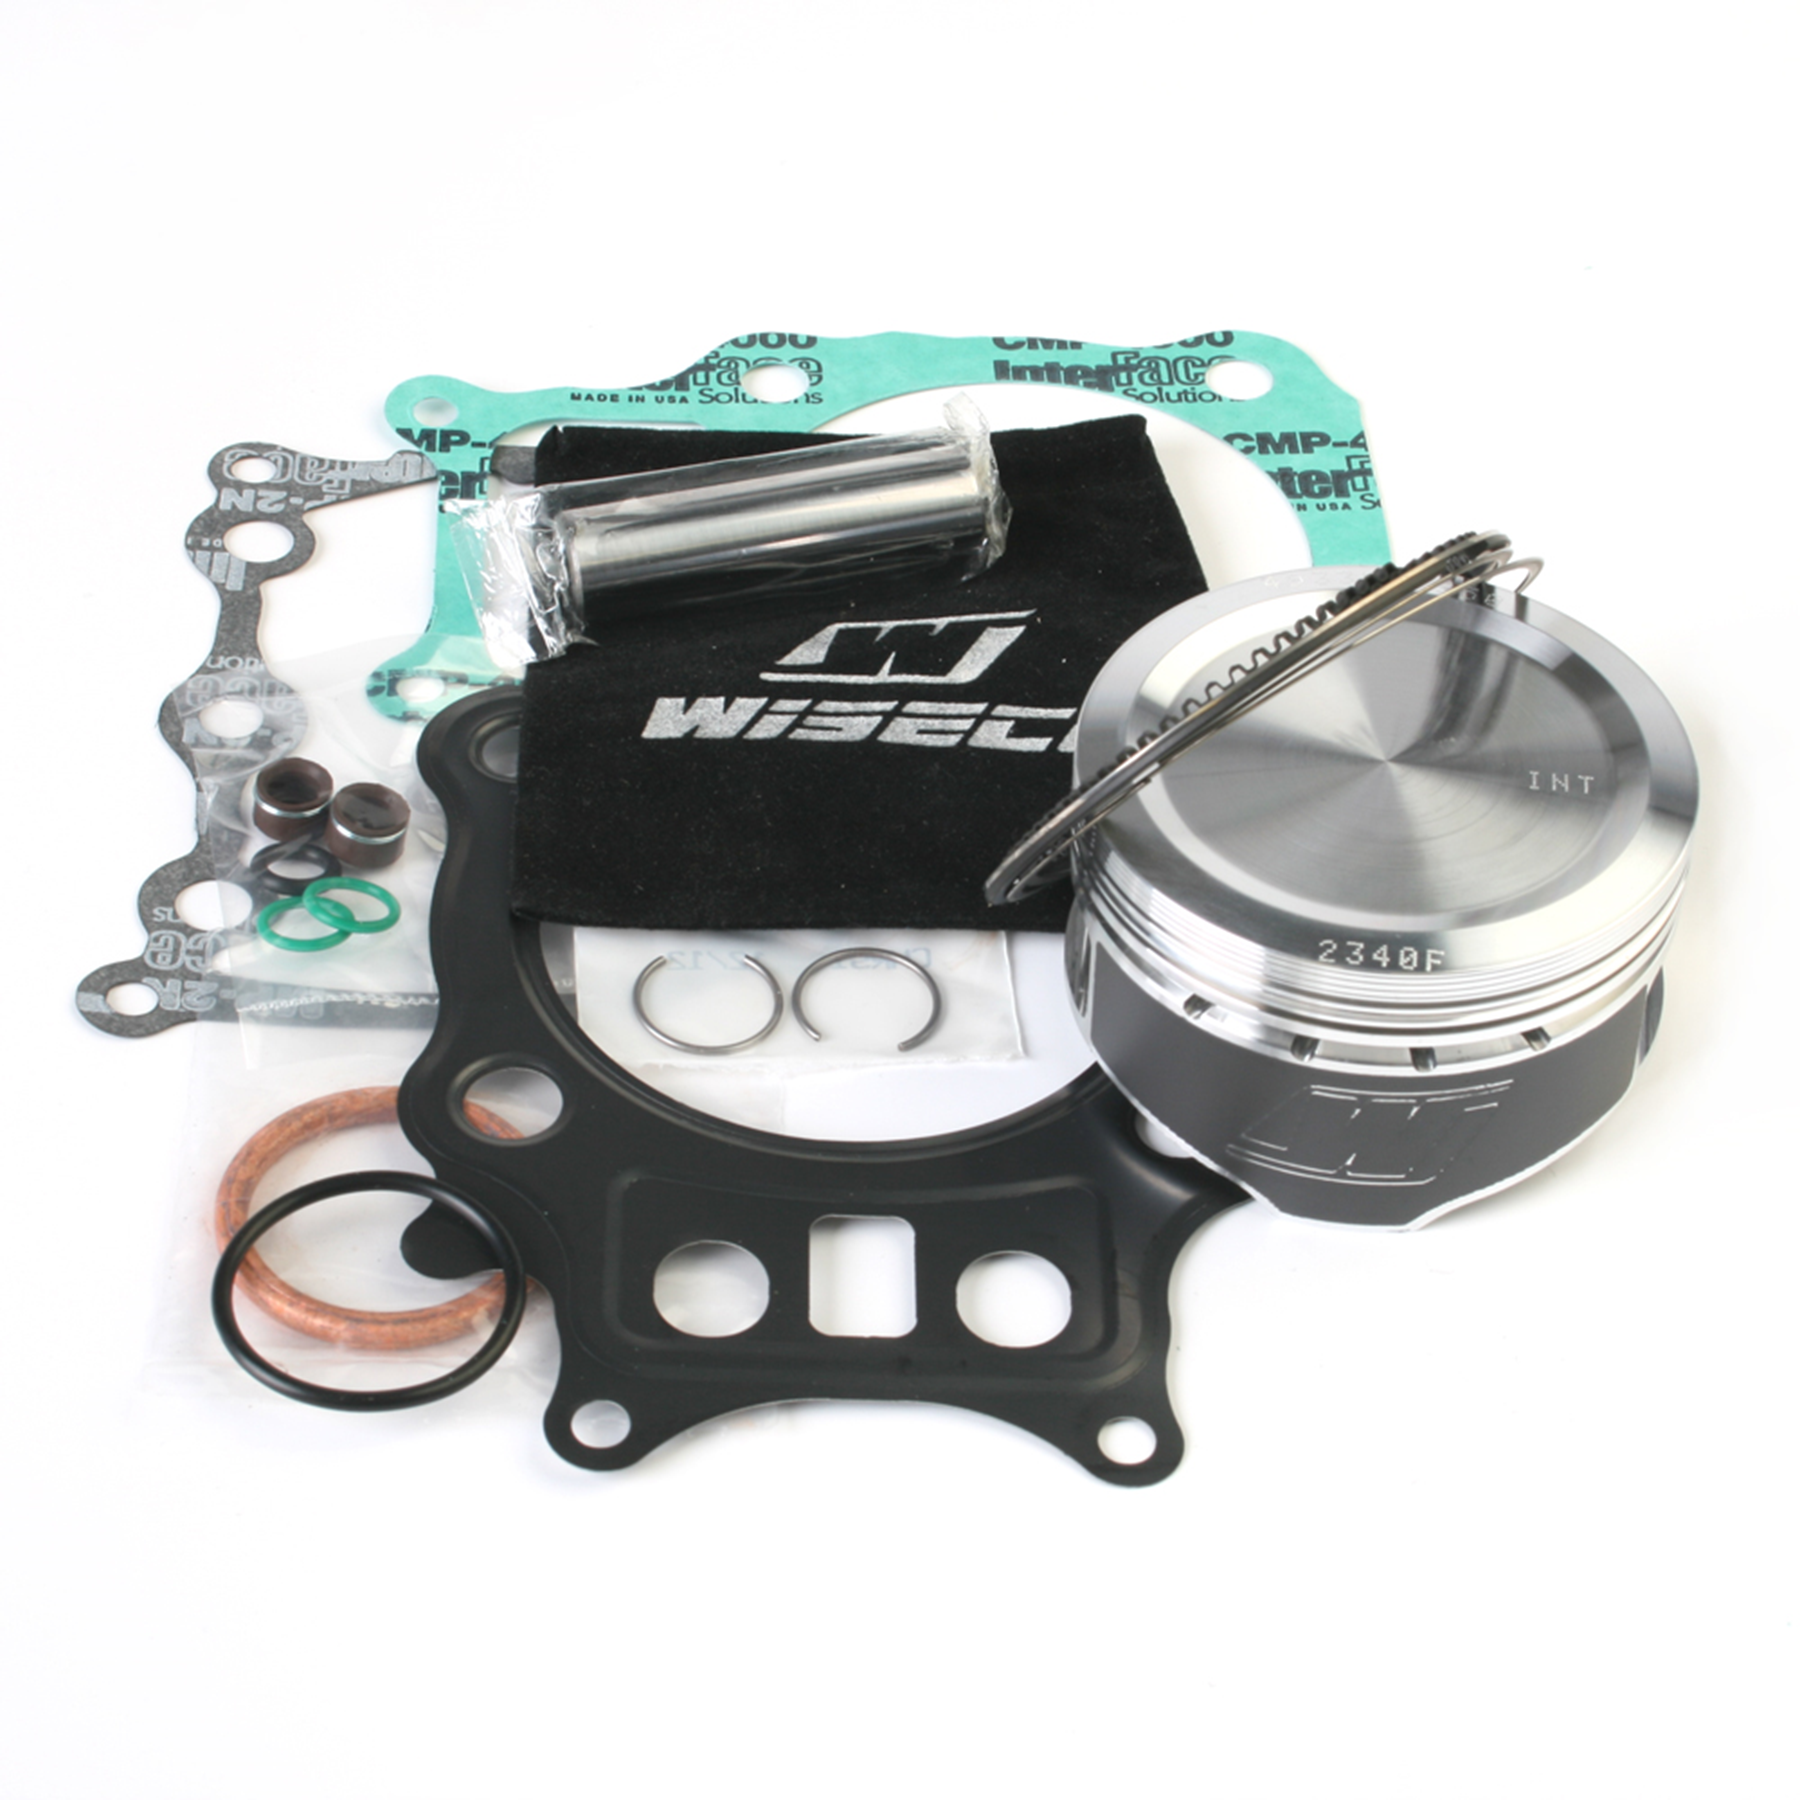 Wiseco Pk1444 79.50 Mm 8.8:1 Compression Atv Piston Kit With Top-End Gasket Kit